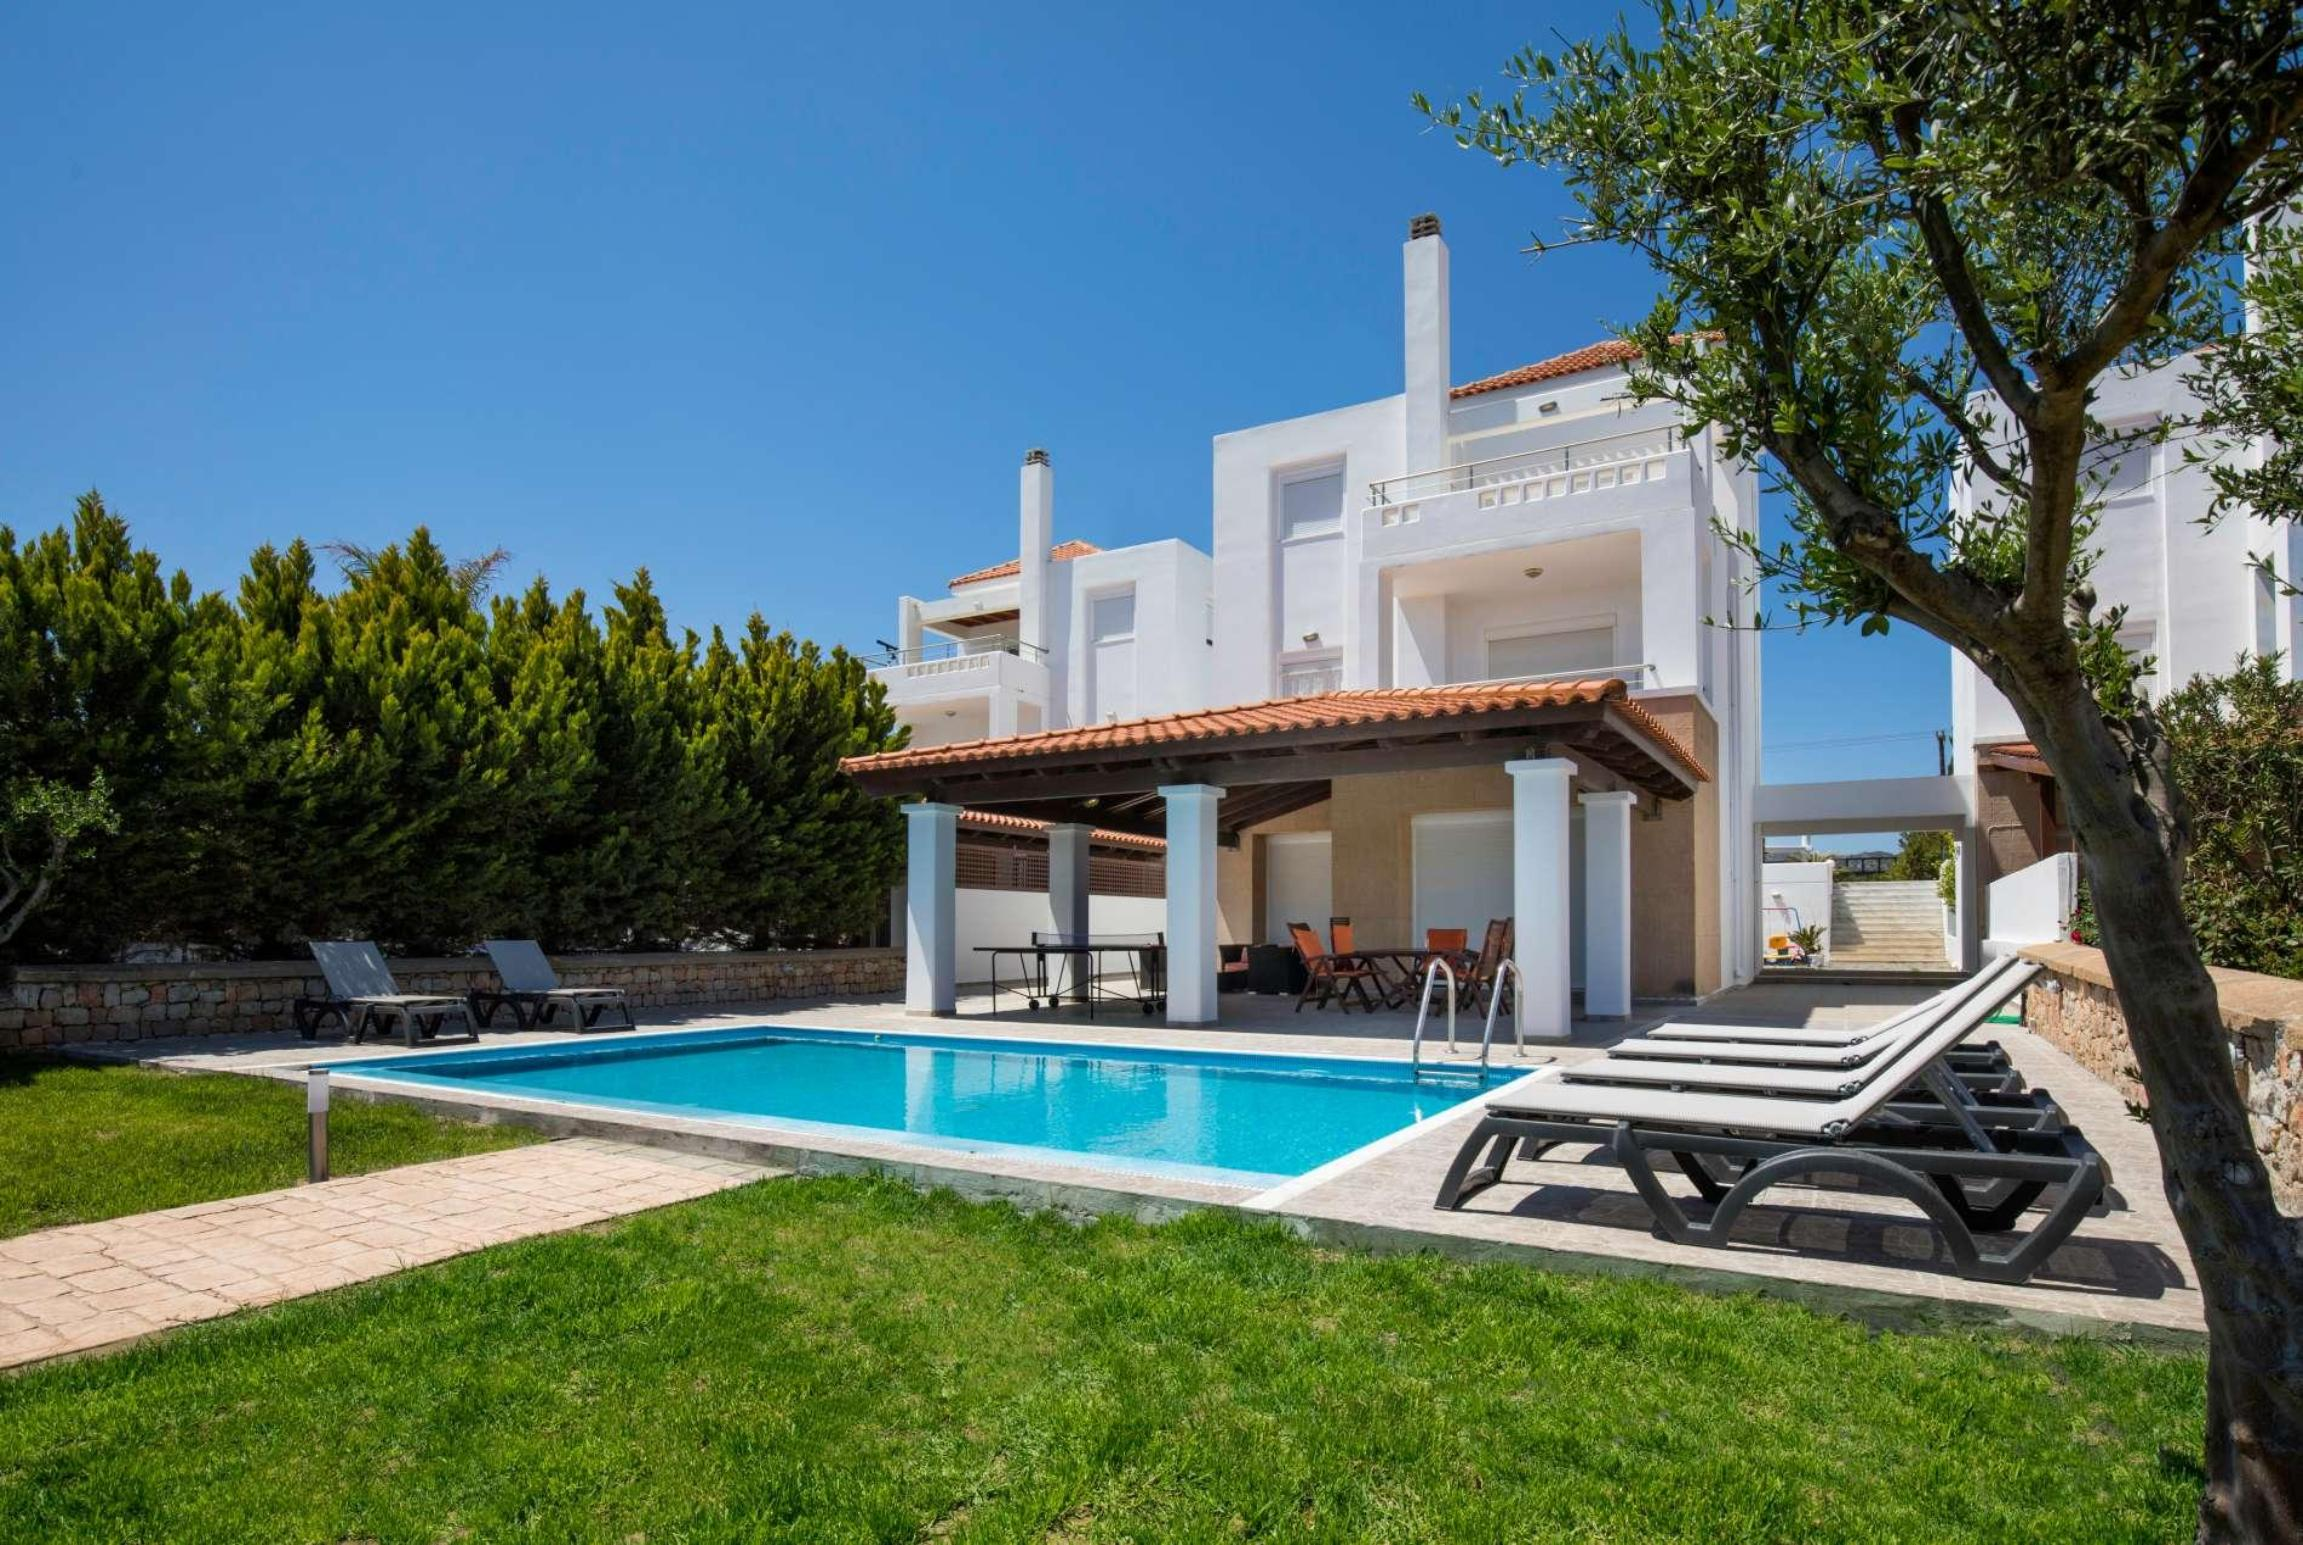 Read more about Mediterranean Blue villa